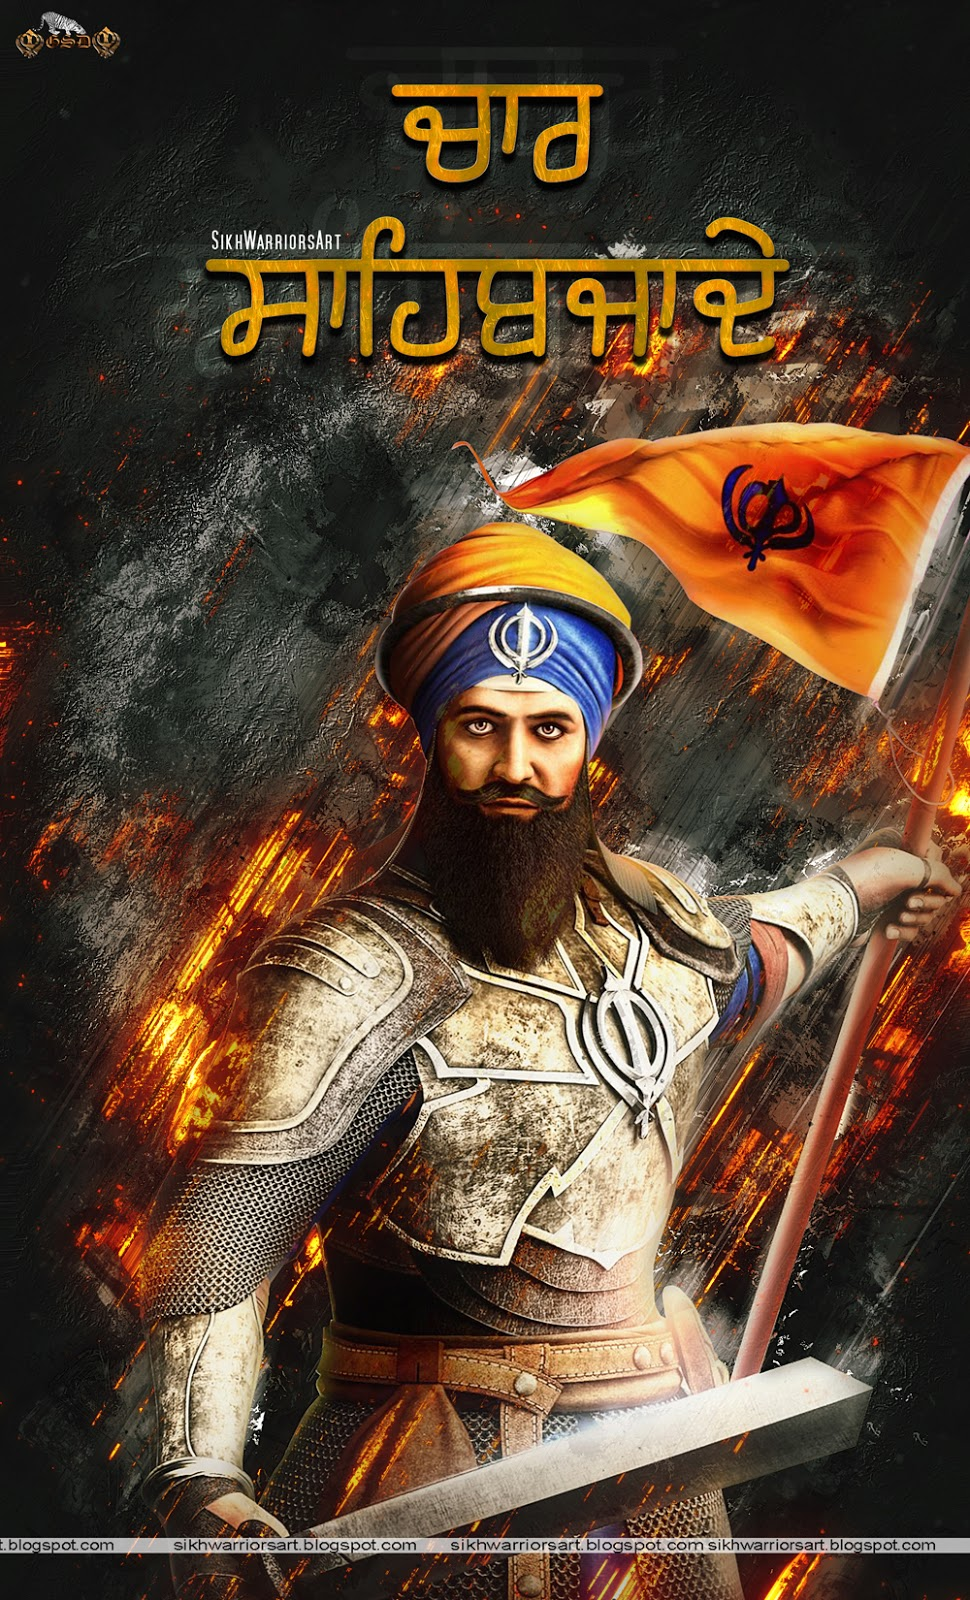 Sikh Wallpapers Hd For Iphone 5 Sikh Warriors Chaar Sahibzaade Rise Of Banda Singh